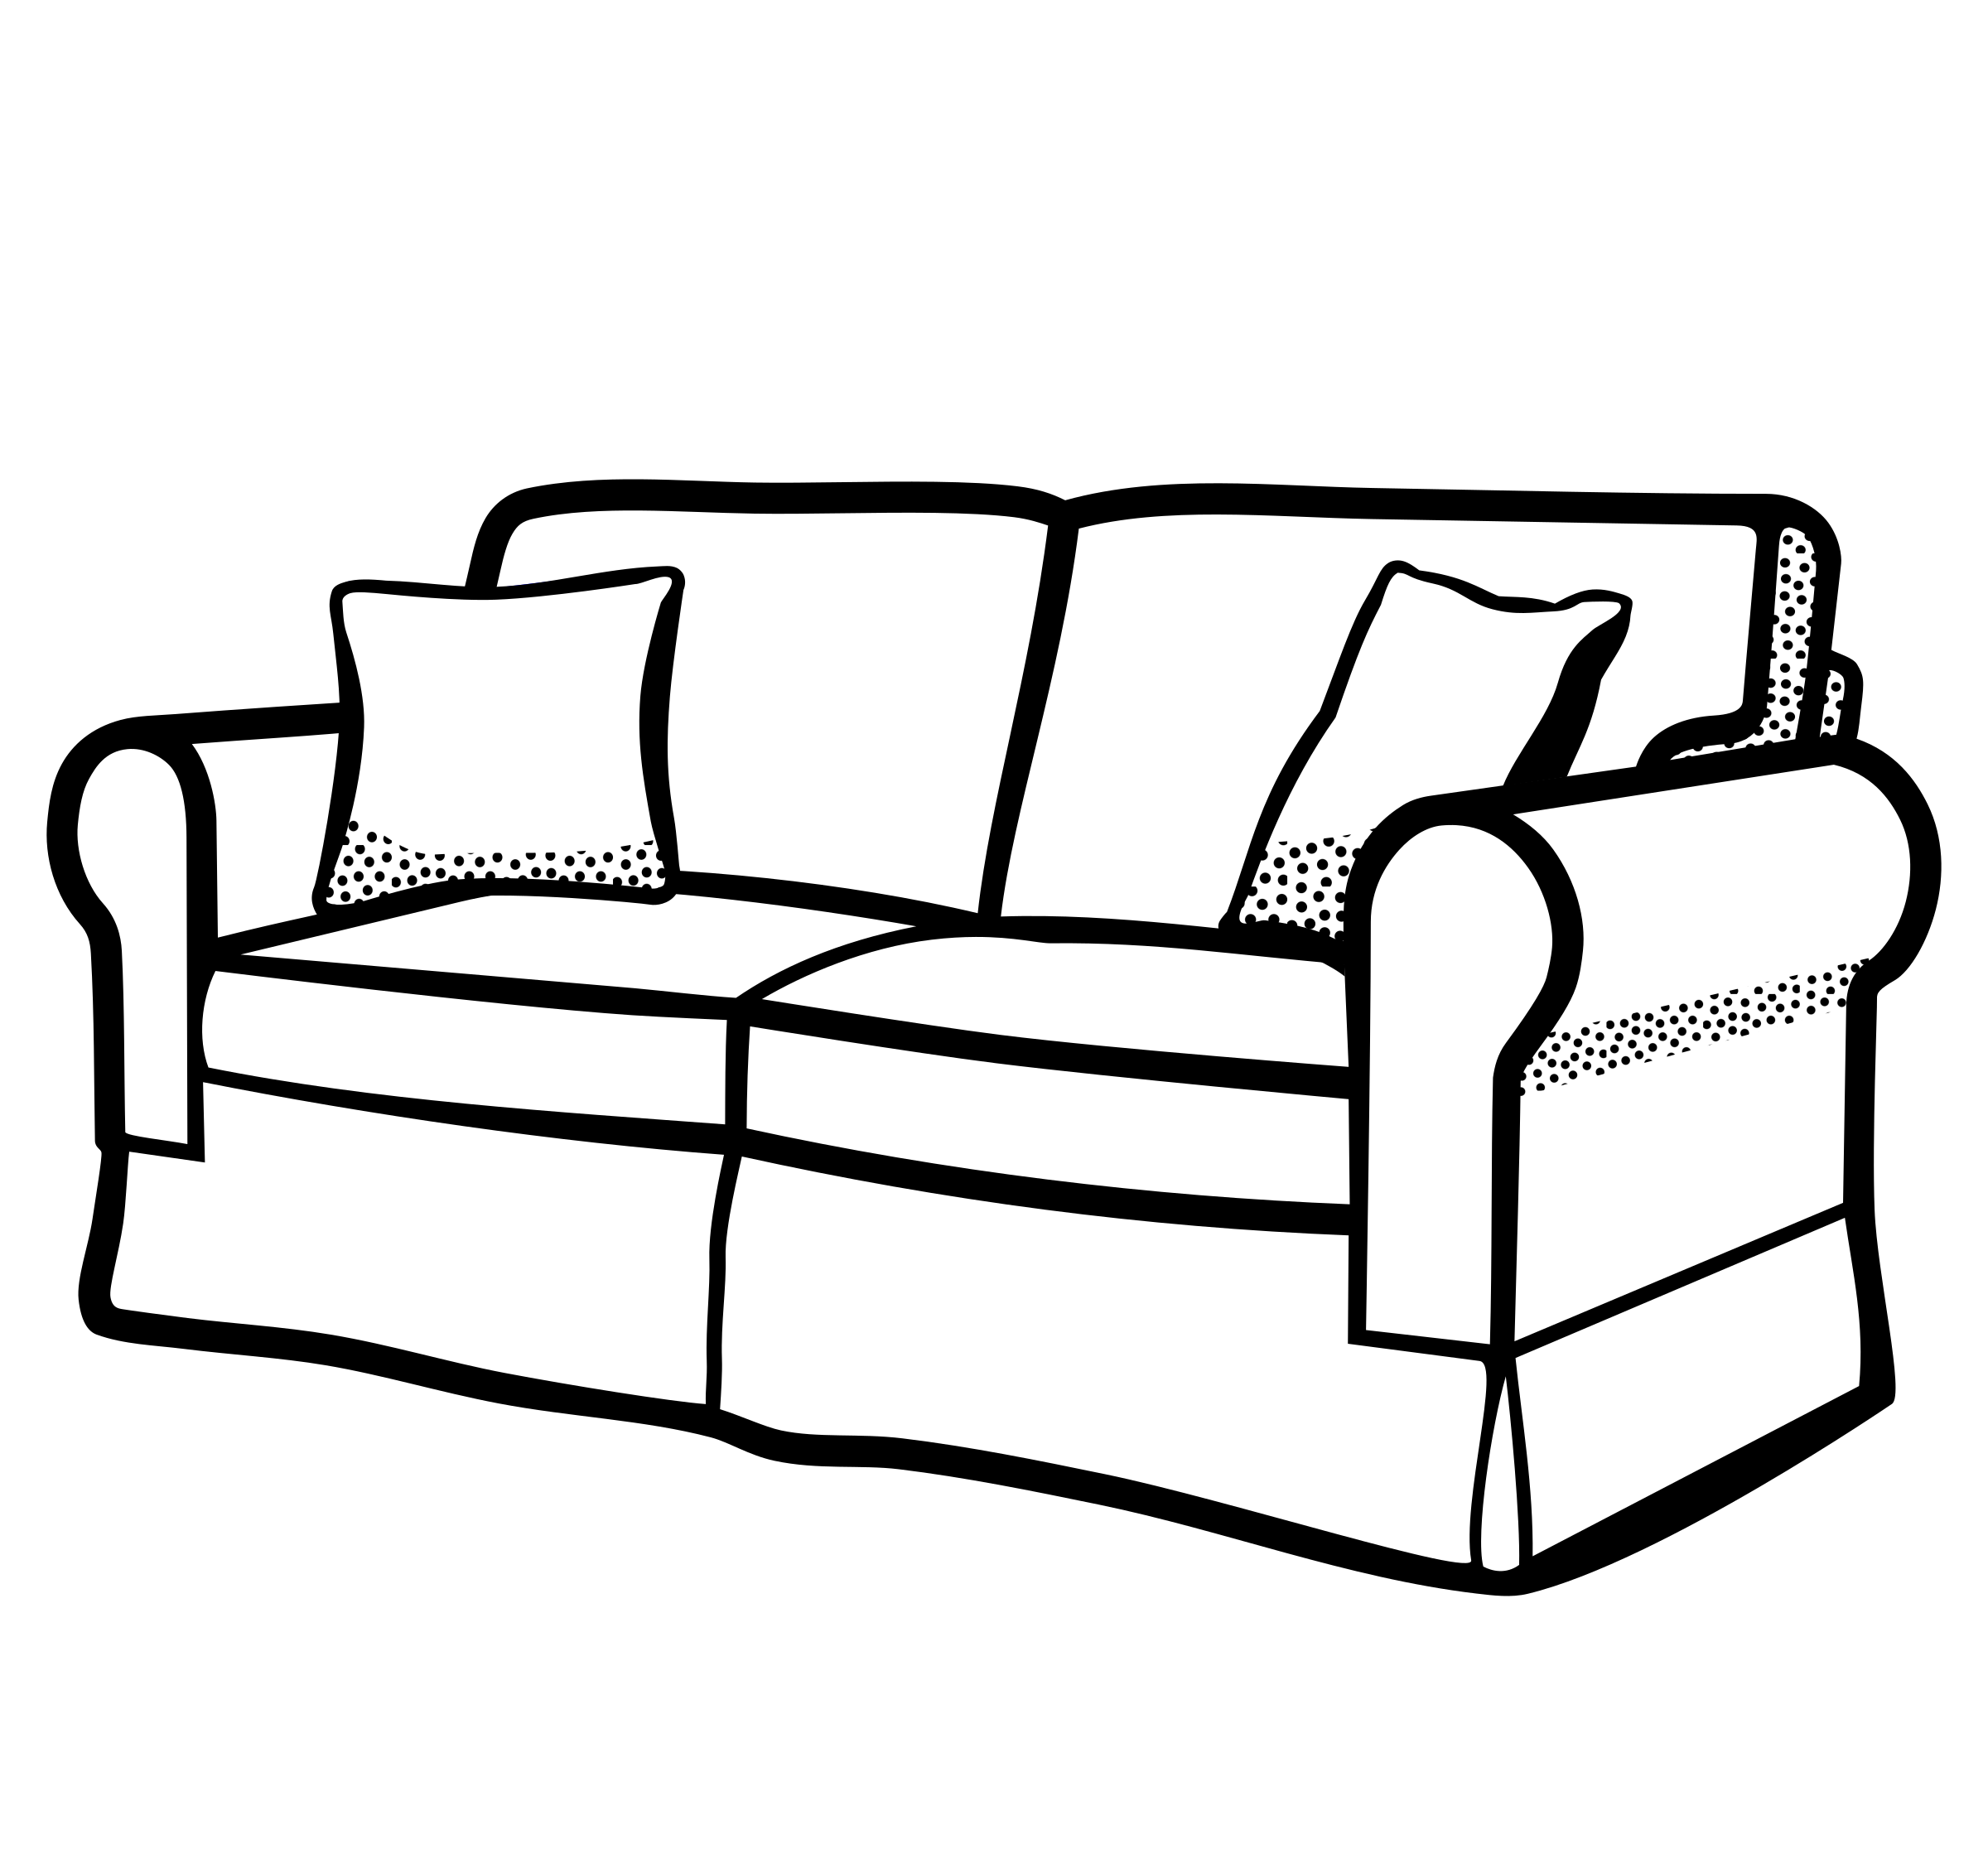 Lineart big image png. Furniture clipart fancy sofa